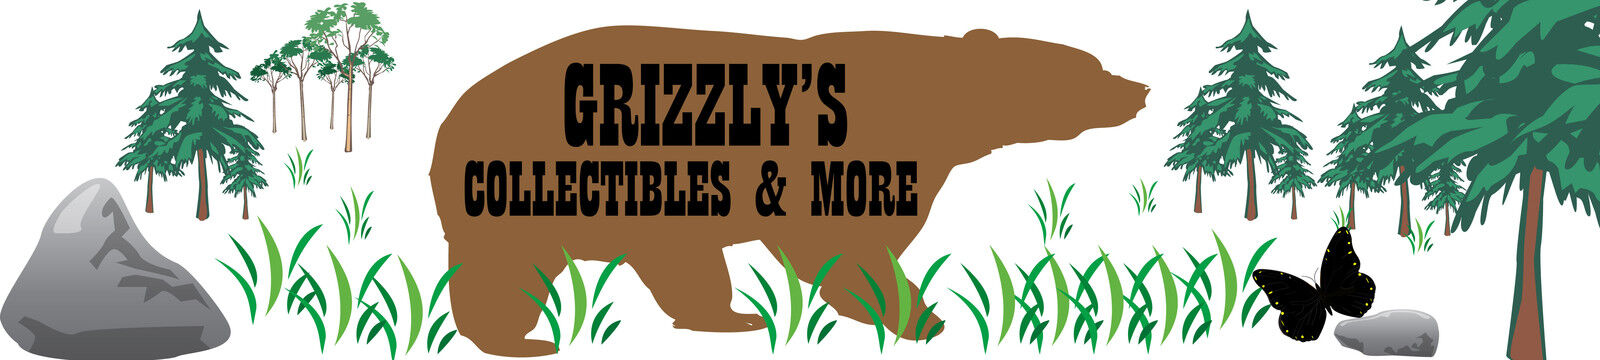 Grizzly's Collectibles & More